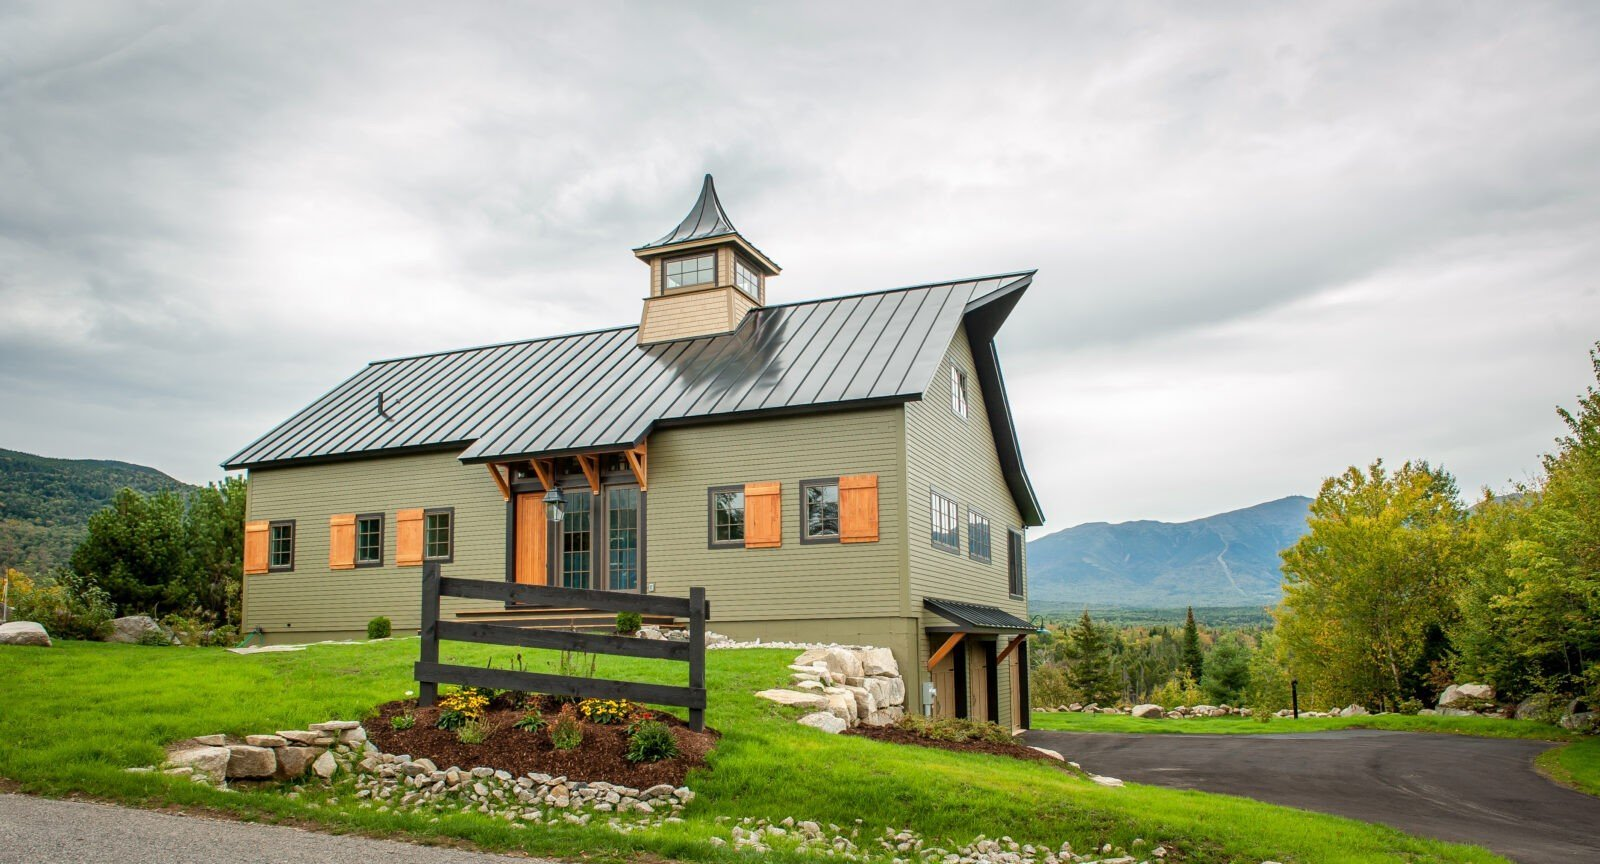 Top notch barn home plans from the ybh design team for Custom farmhouse plans